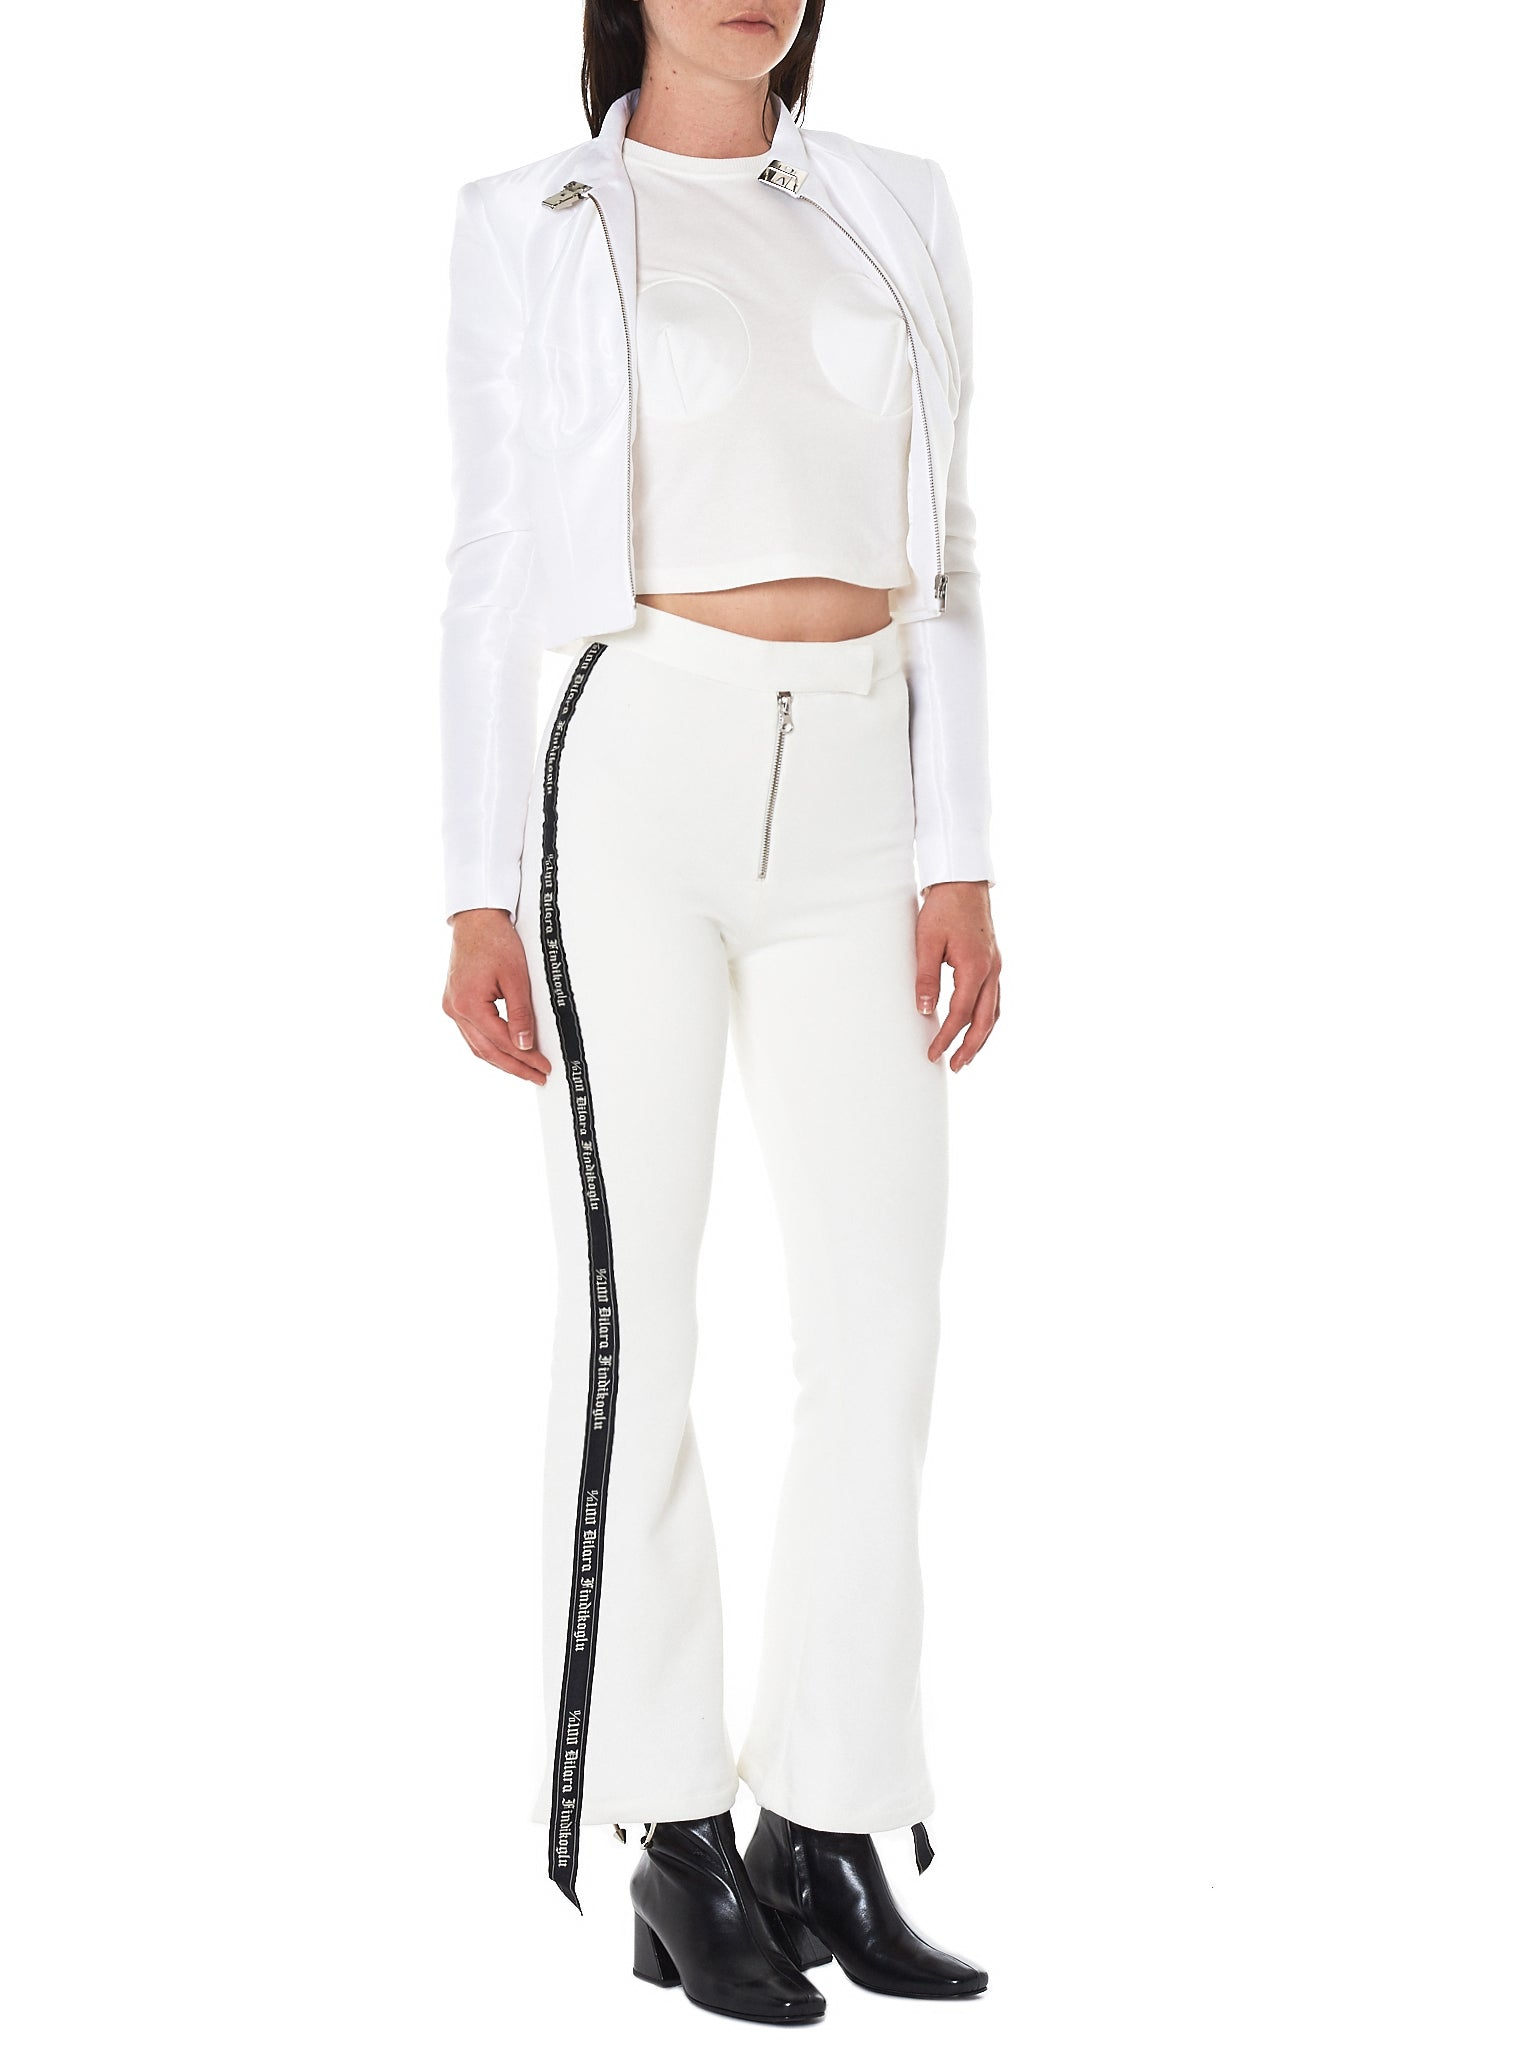 Dilara Findikoglu white flared trouser- Hlorenzo full view